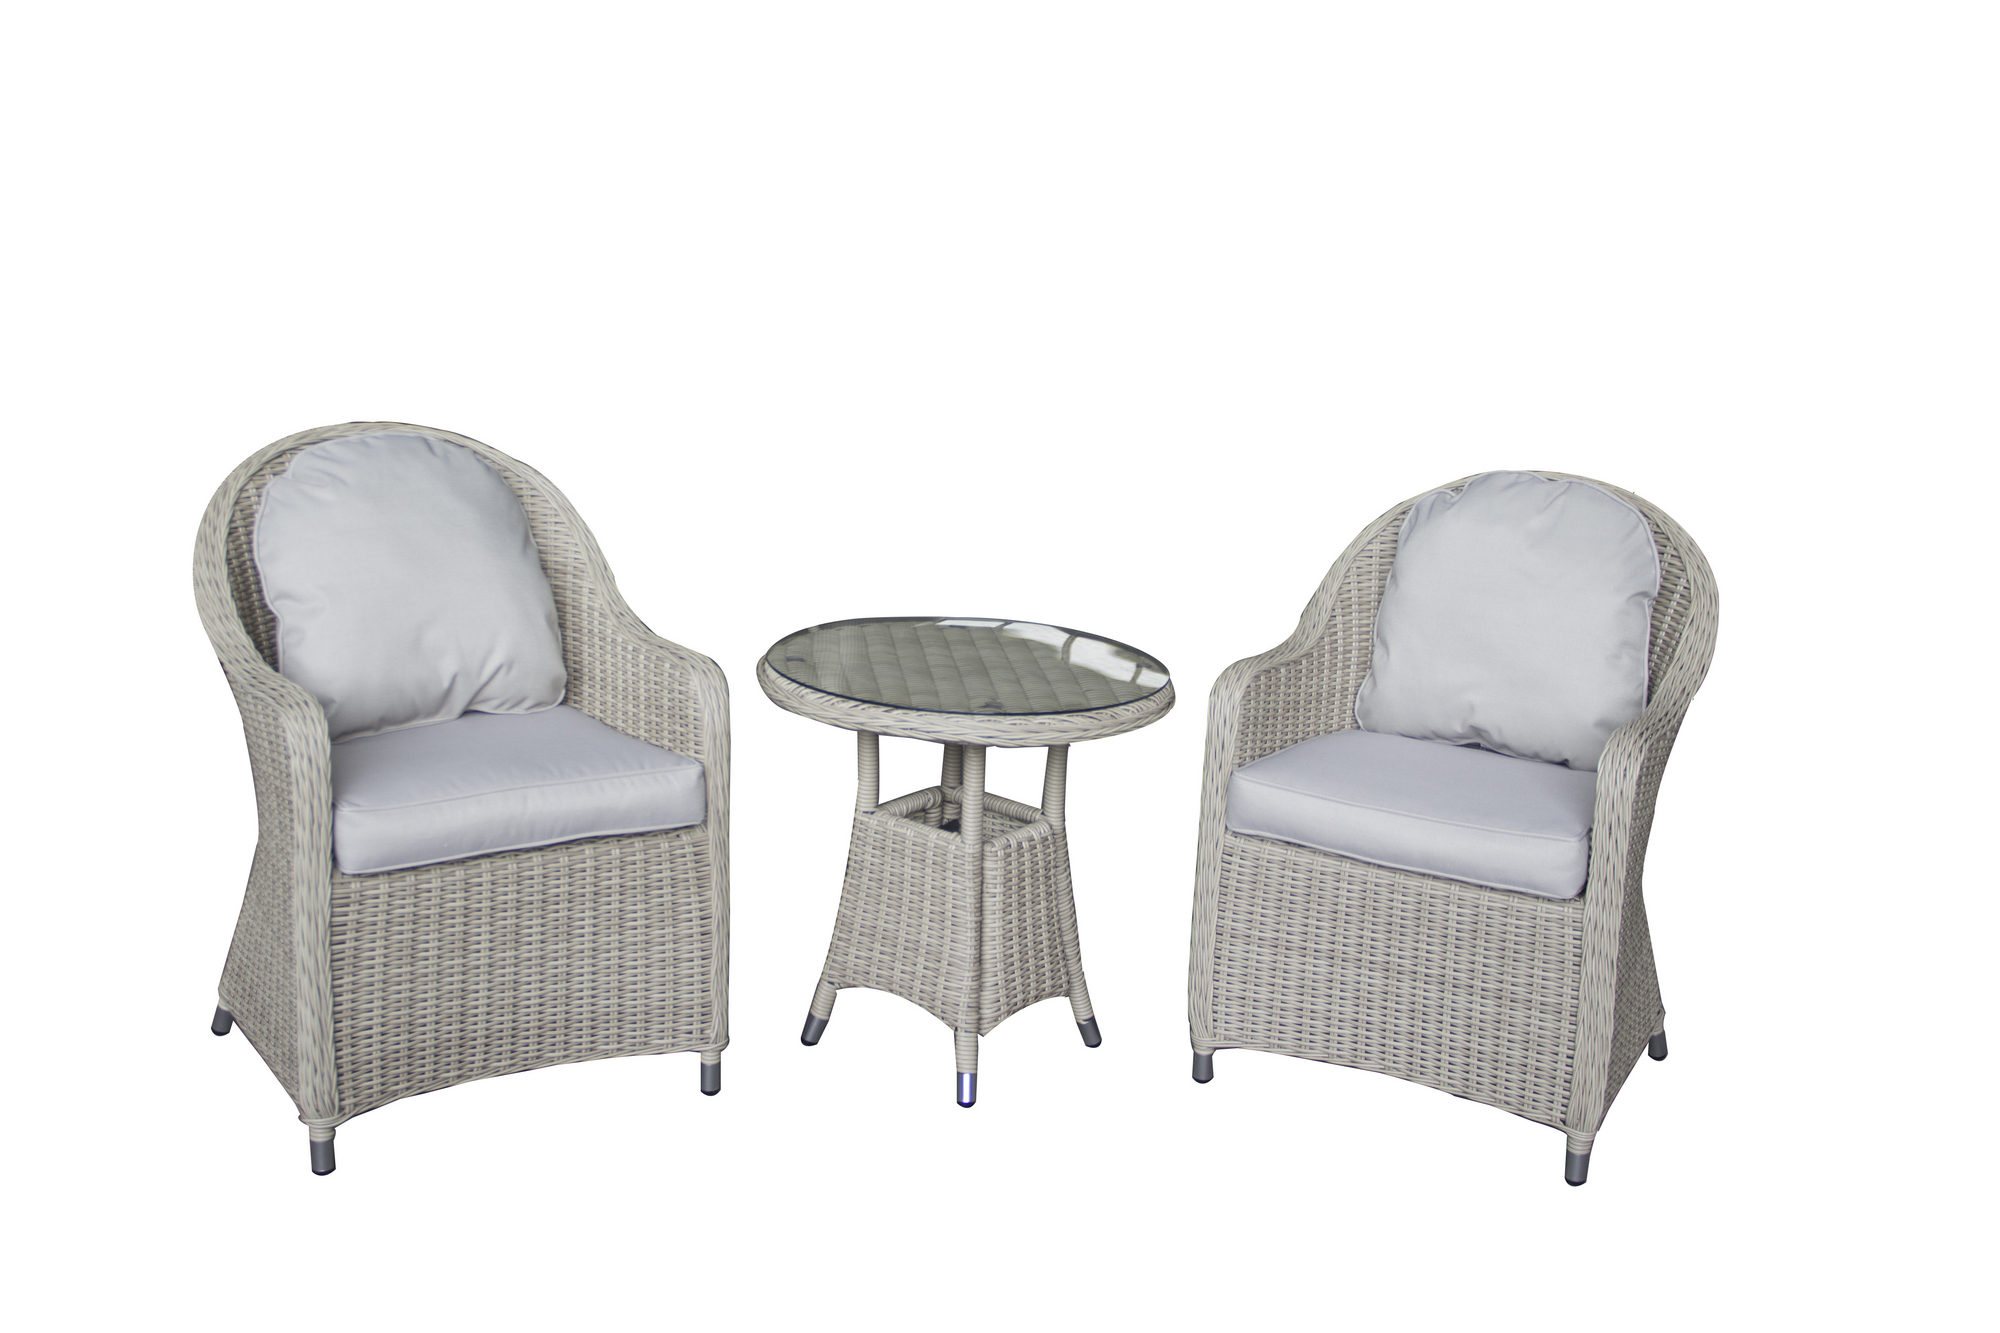 Norcamp Bella Vista Bistro Set